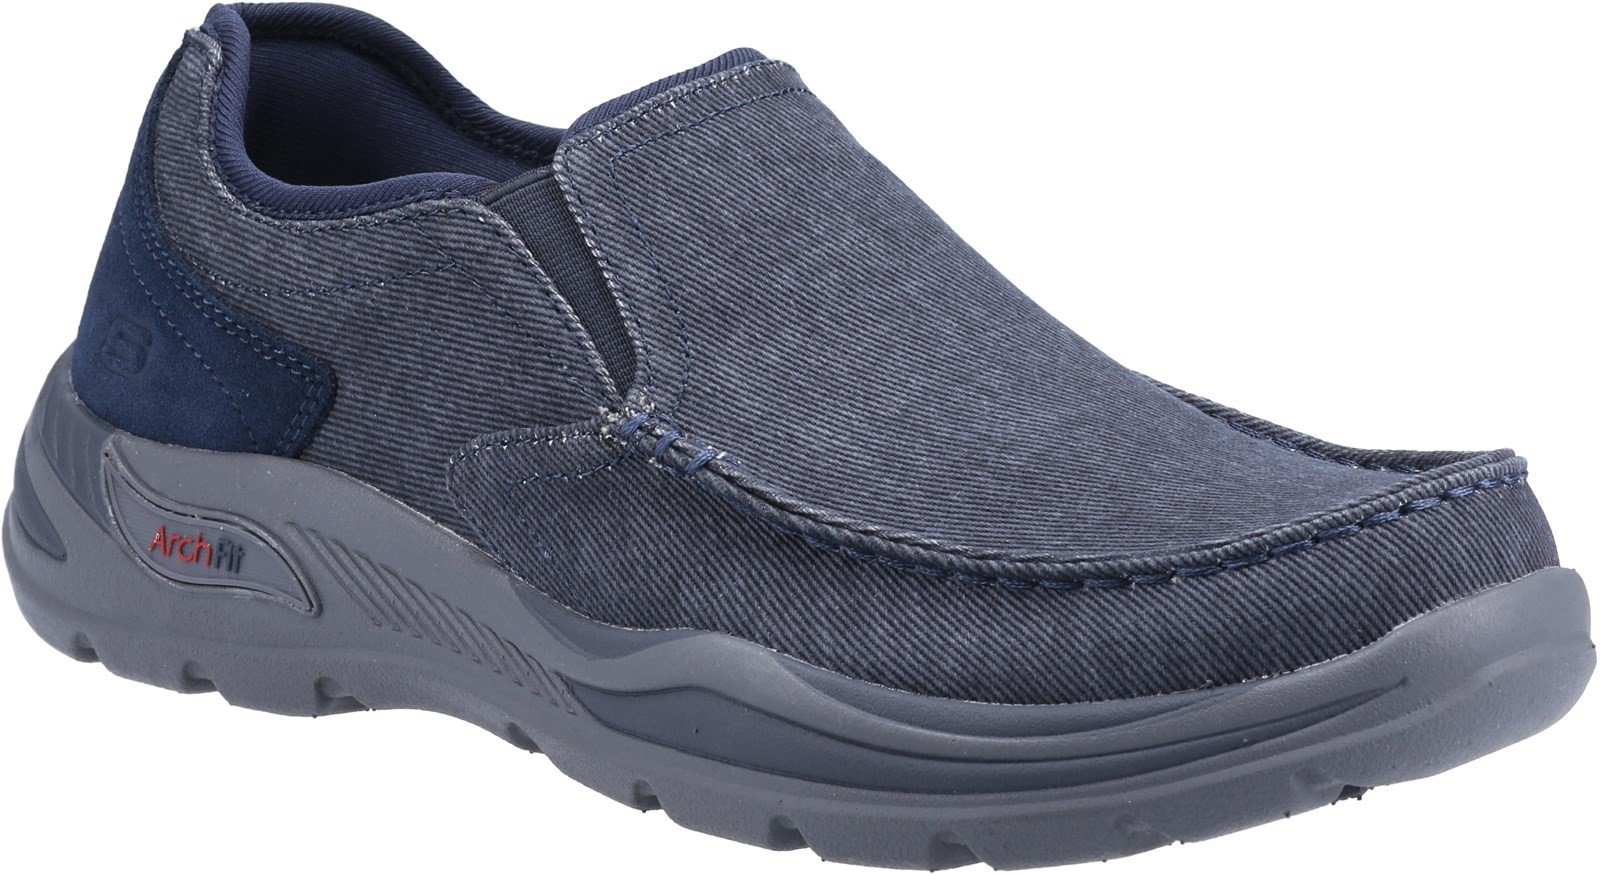 Skechers Men's Arch Fit Motley Rolens Casual Trainer Various Colours 32190 - Navy 6